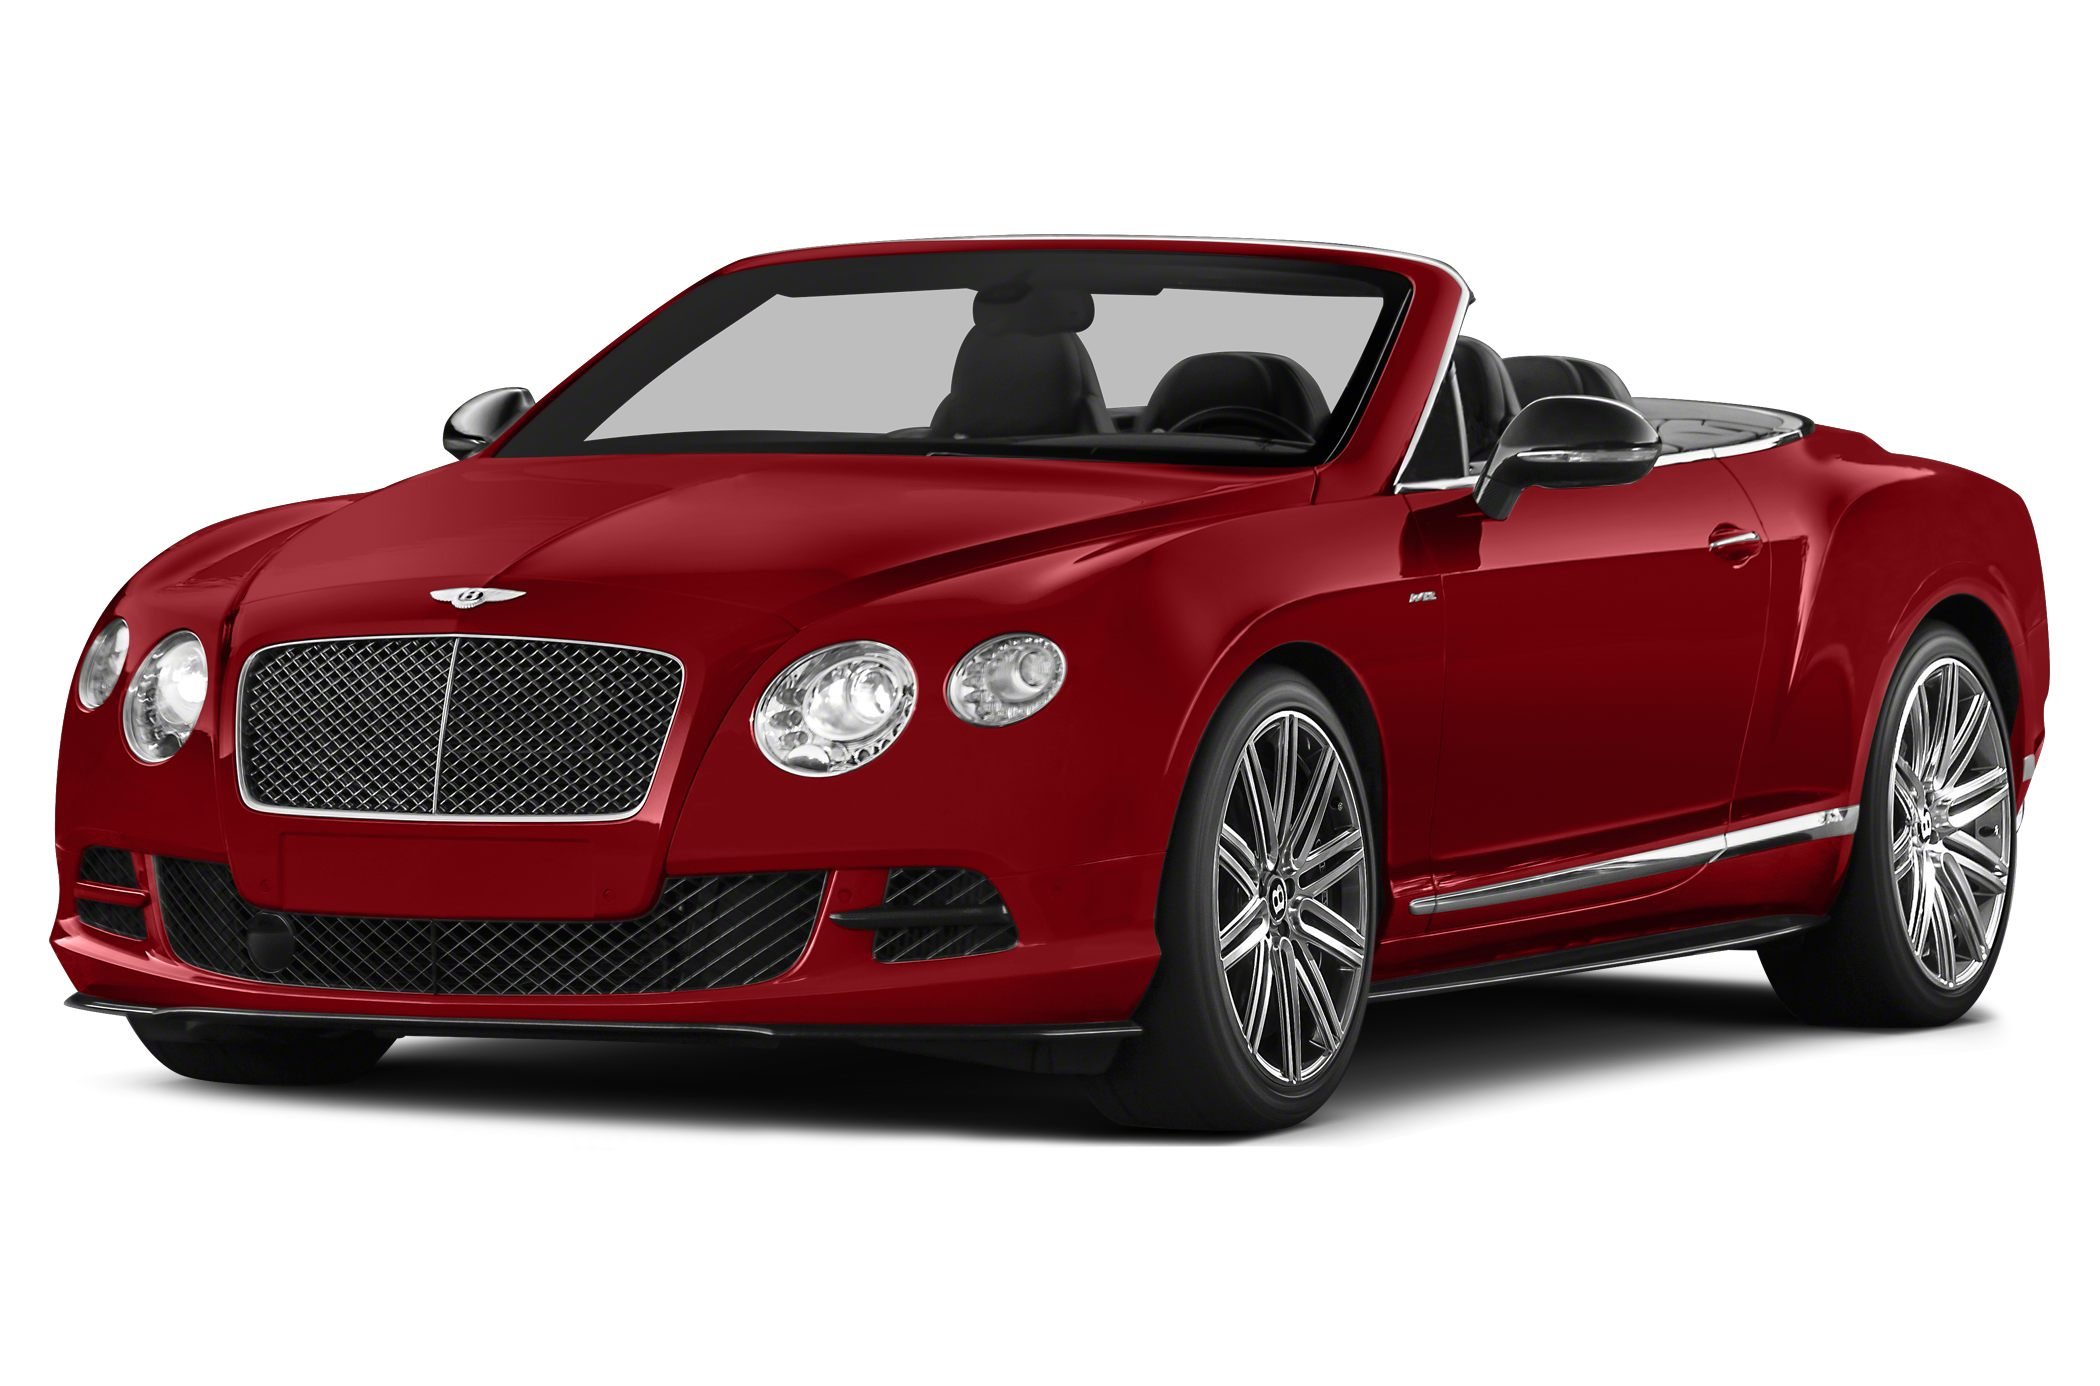 2015 Bentley Continental GTC Speed Convertible for sale in Miami for $271,410 with 34 miles.